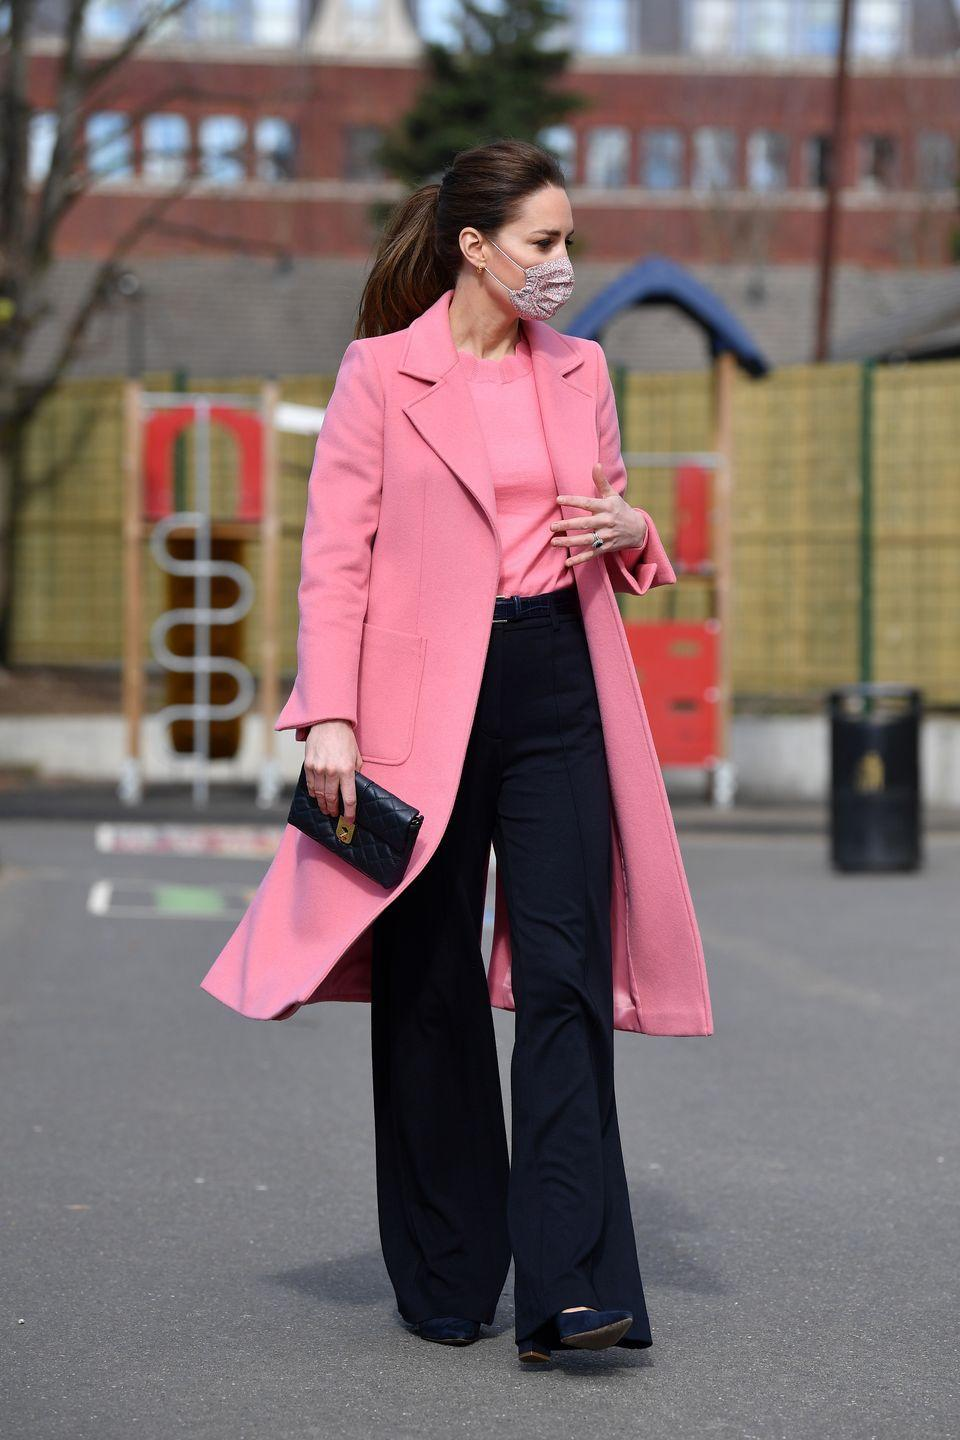 <p>It was only natural that someone who puts such care into her looks as Kate does would choose a protective face mask to match her salmon pink coat and shirt. </p>